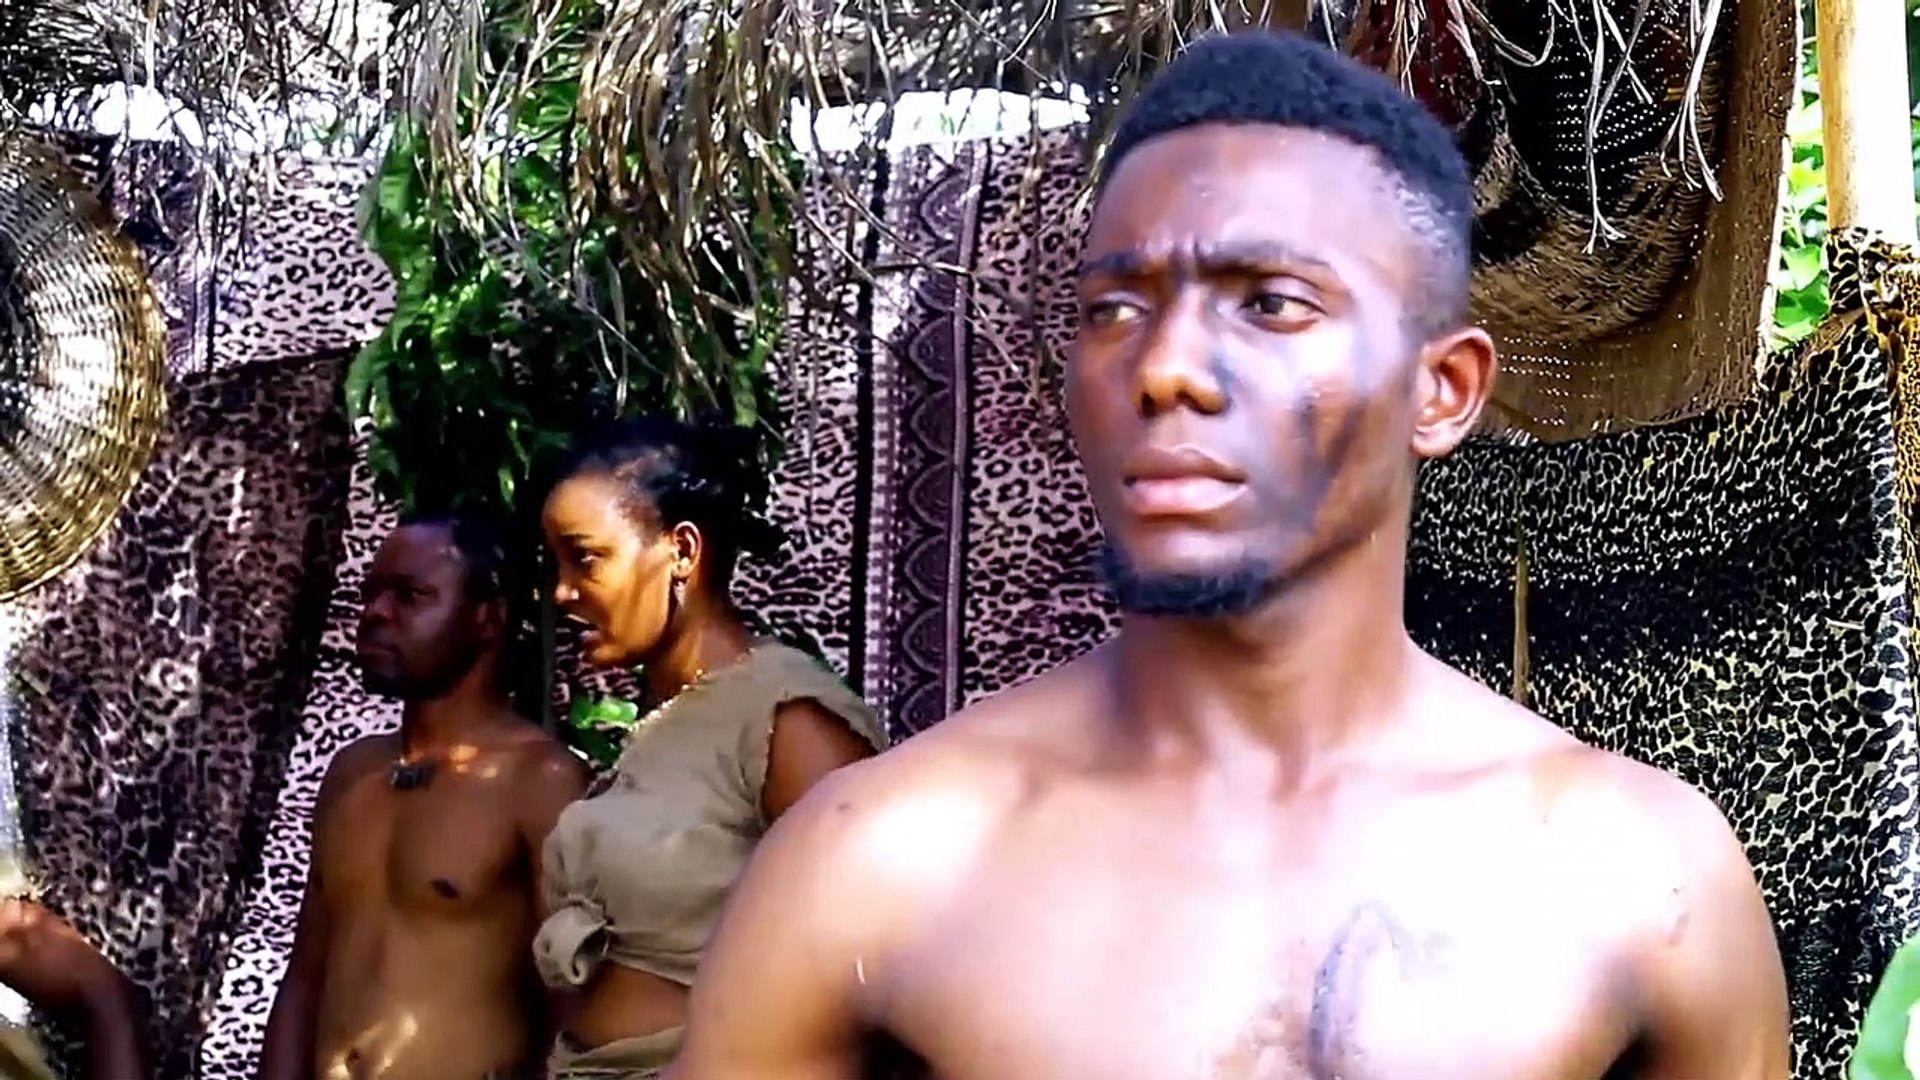 THE GODS KILLED ALL THE VIRGINS IN  OUR TOWN - 2019 NIGERIAN MOVIE